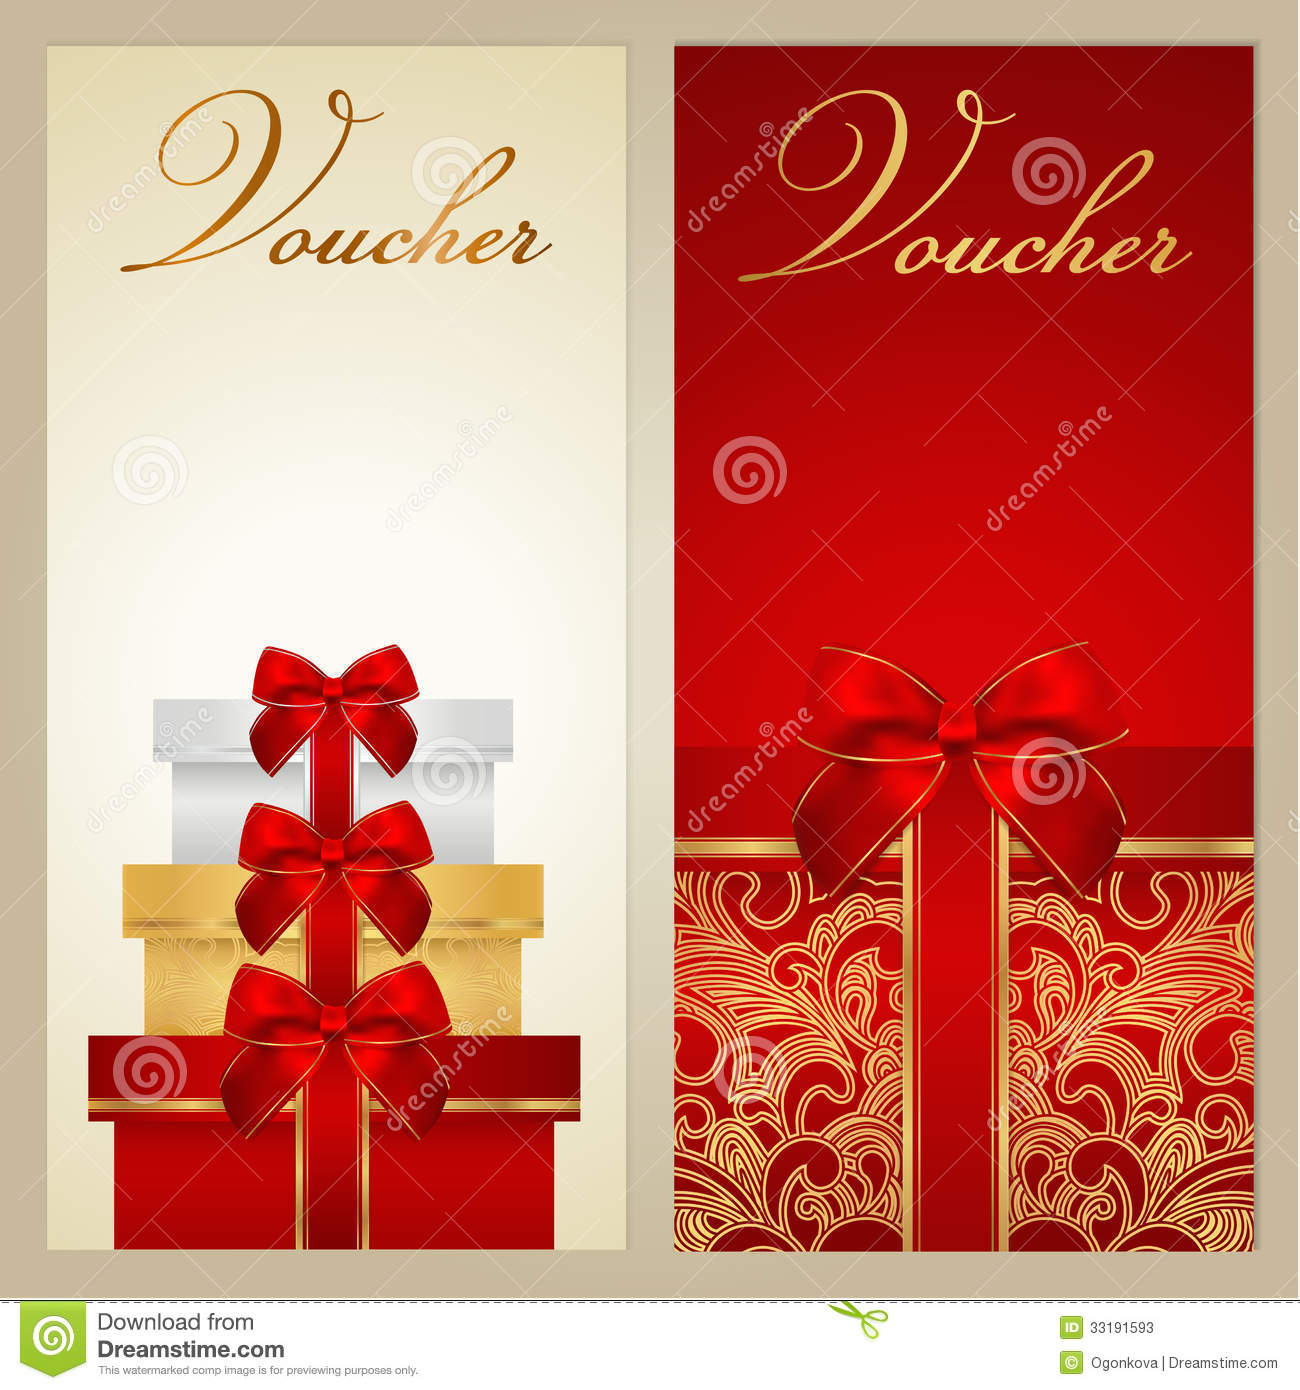 Voucher gift certificate coupon boxes bow stock vector voucher gift certificate coupon boxes bow yelopaper Gallery